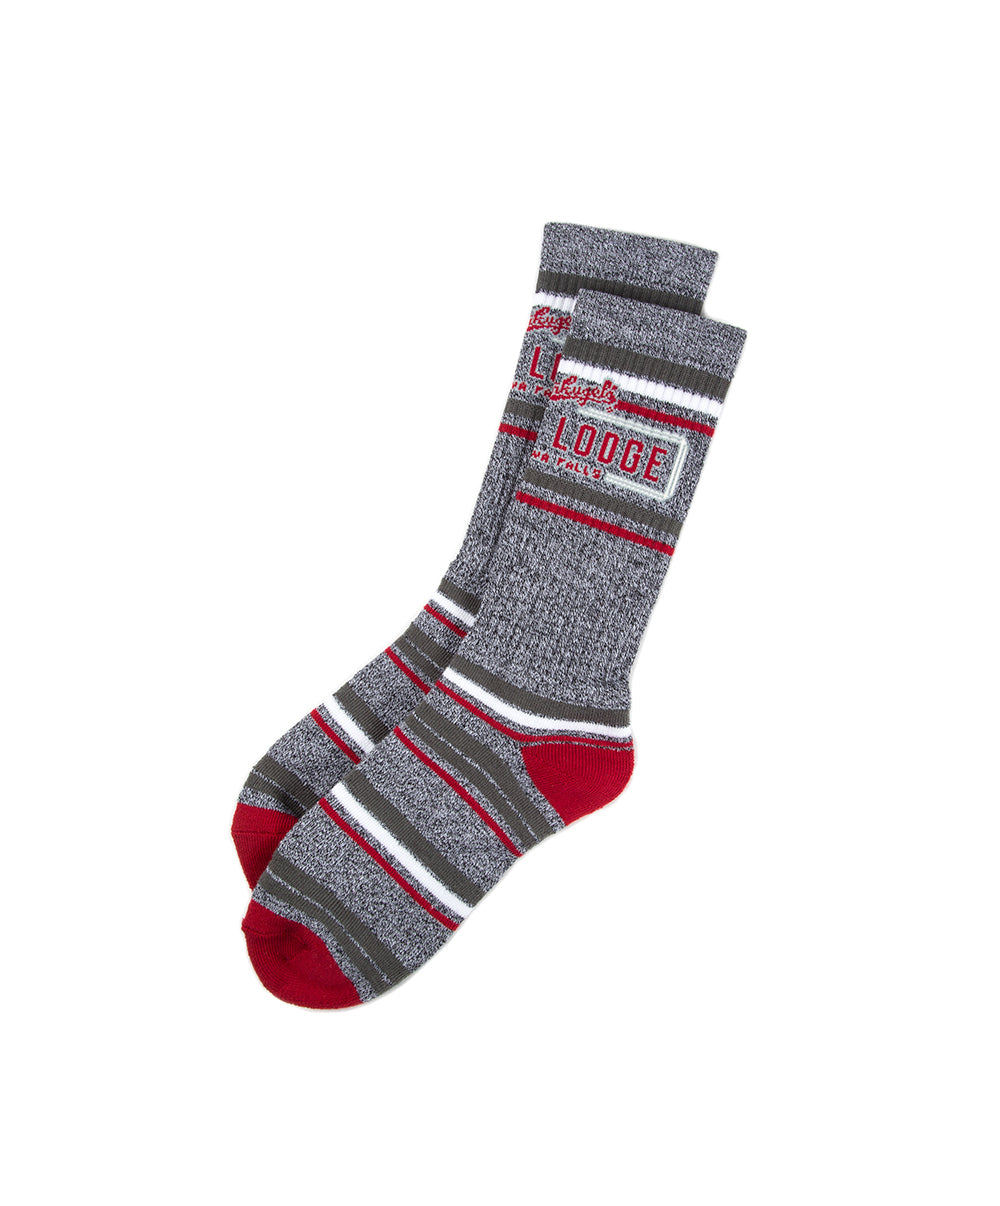 LEINIE LDG VARIED STRIPE SOCKS